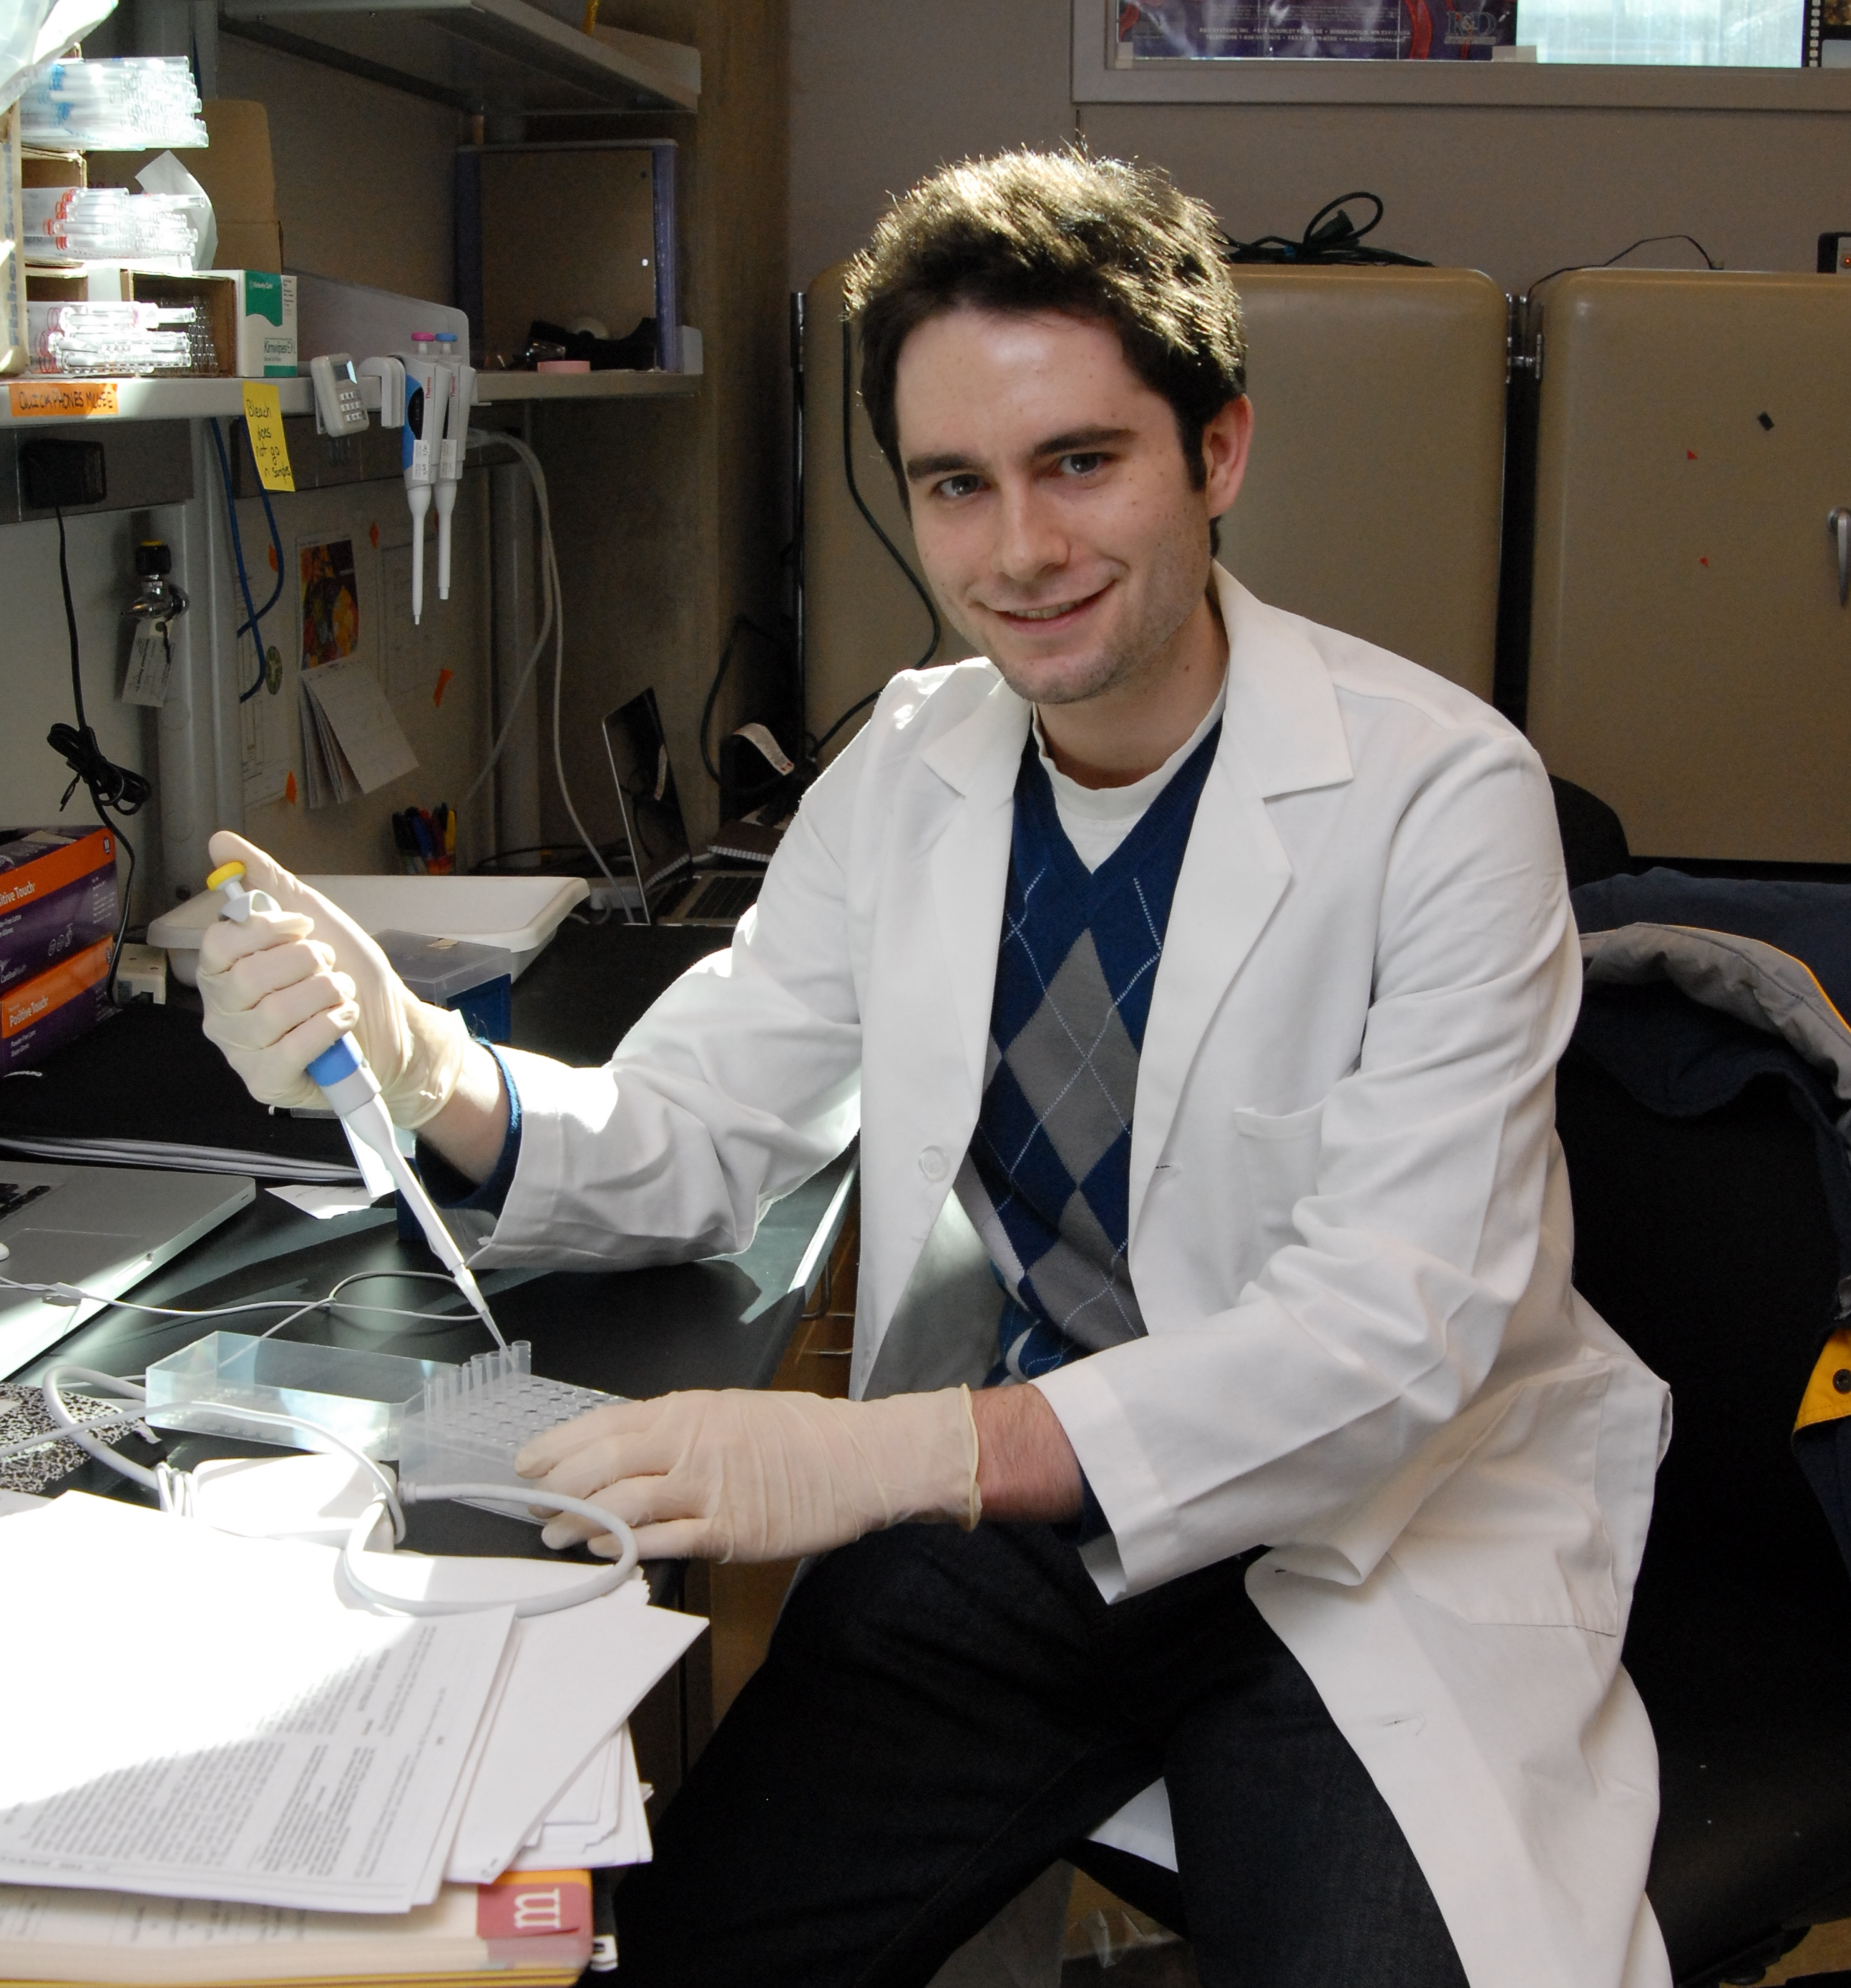 MD/PhD student Jason Schenkel